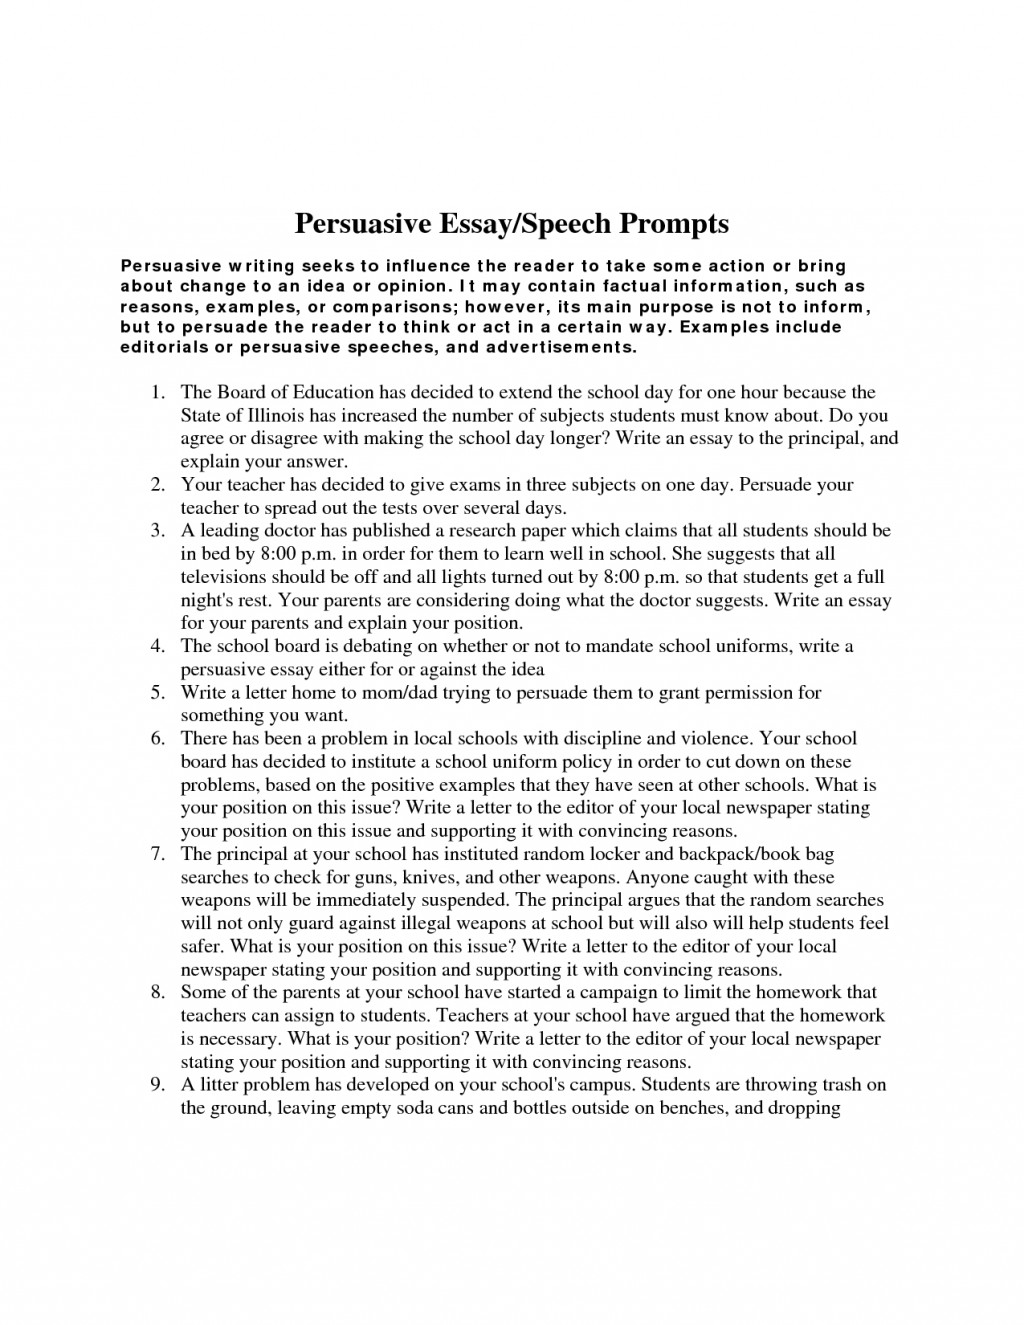 010 Essay Example Persuasive Prompts Rare Argumentative Topics For College Students Unique Writing 6th Grade Large